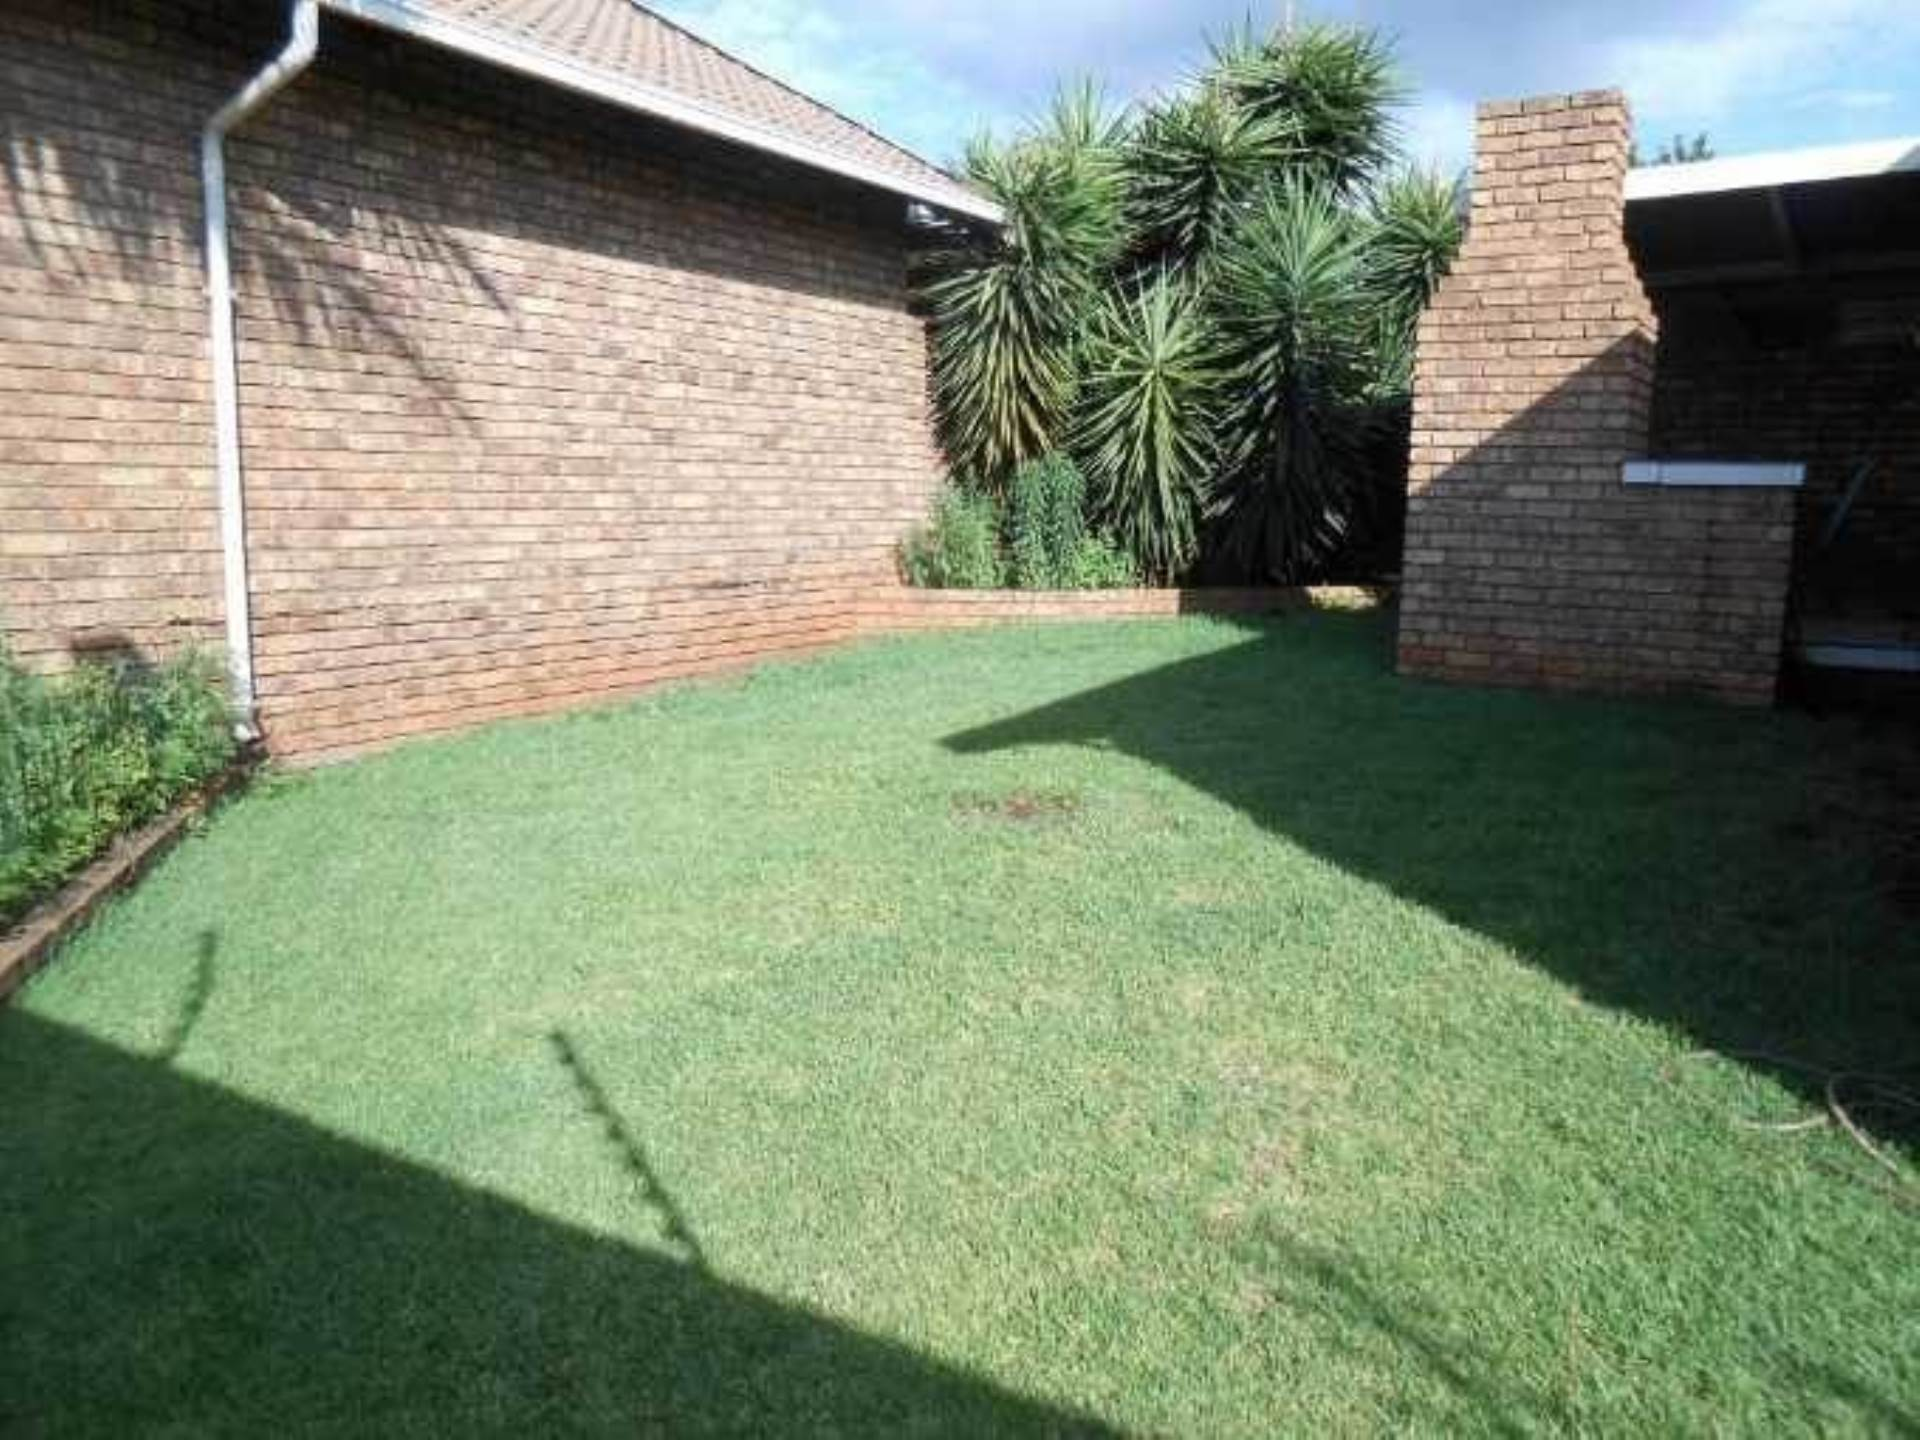 Centurion, Centurion Central Property  | Houses For Sale Centurion Central, CENTURION CENTRAL, Townhouse 2 bedrooms property for sale Price:1,240,000